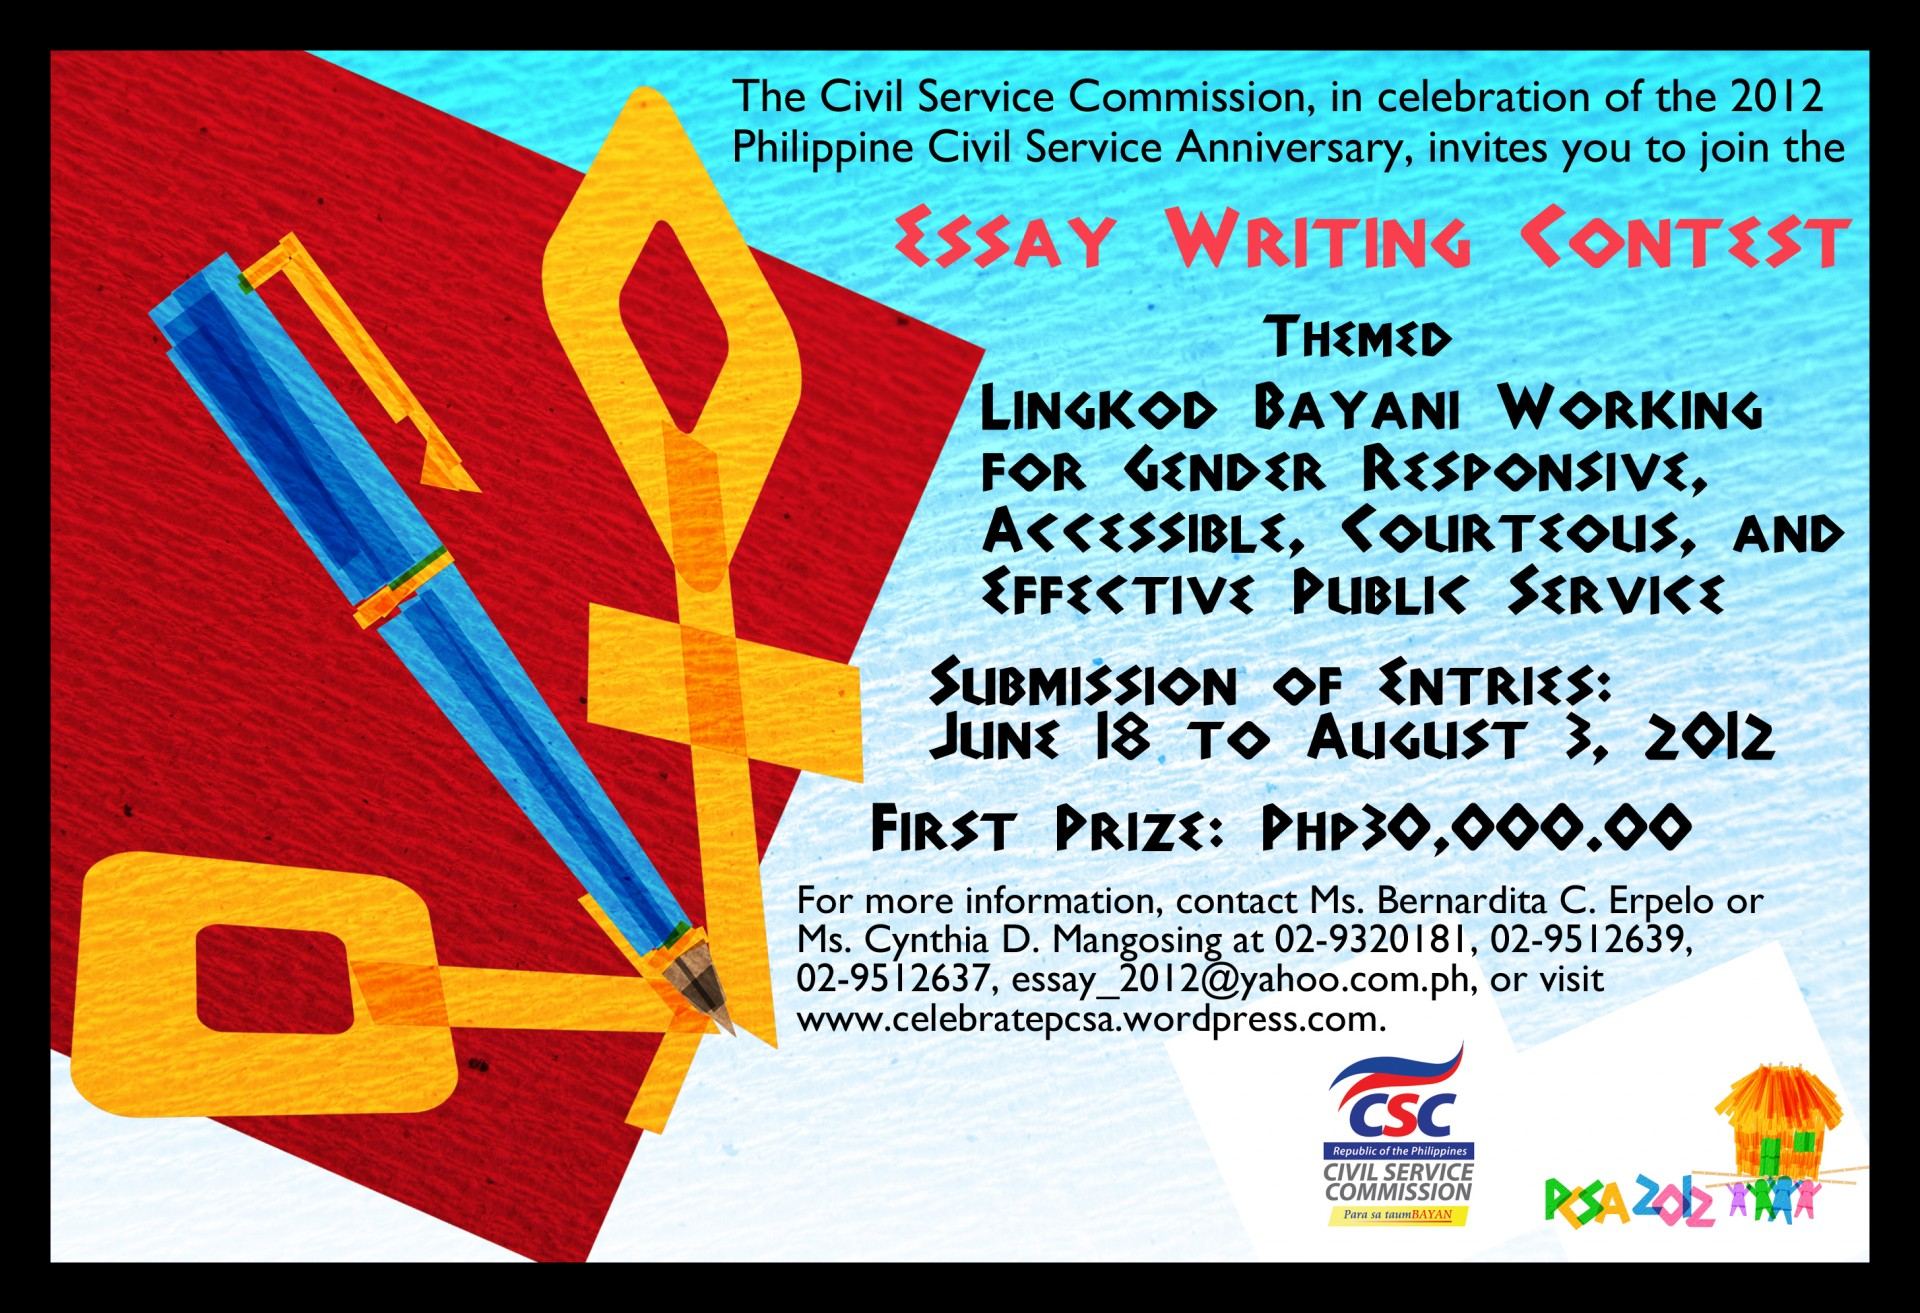 002 Essay Writing Contest 2012pcsa Flyer Kubo Essay3 Incredible Competition For College Students By Essayhub Sample Mechanics 1920